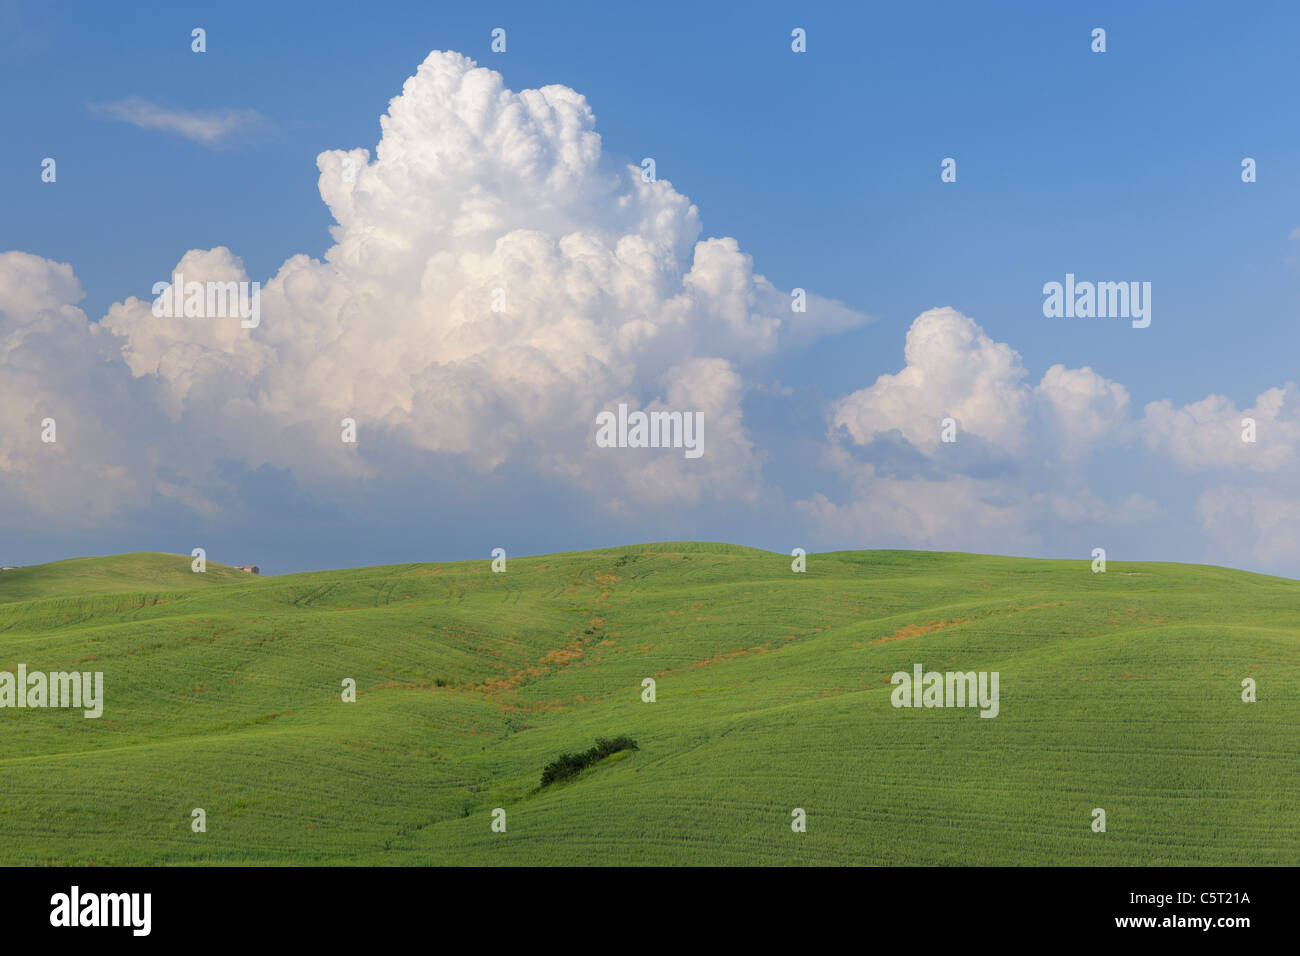 Italy, Tuscany, Province of Siena, Val d'Orcia, Pienza, View of cumulonimbus cloud with green field - Stock Image